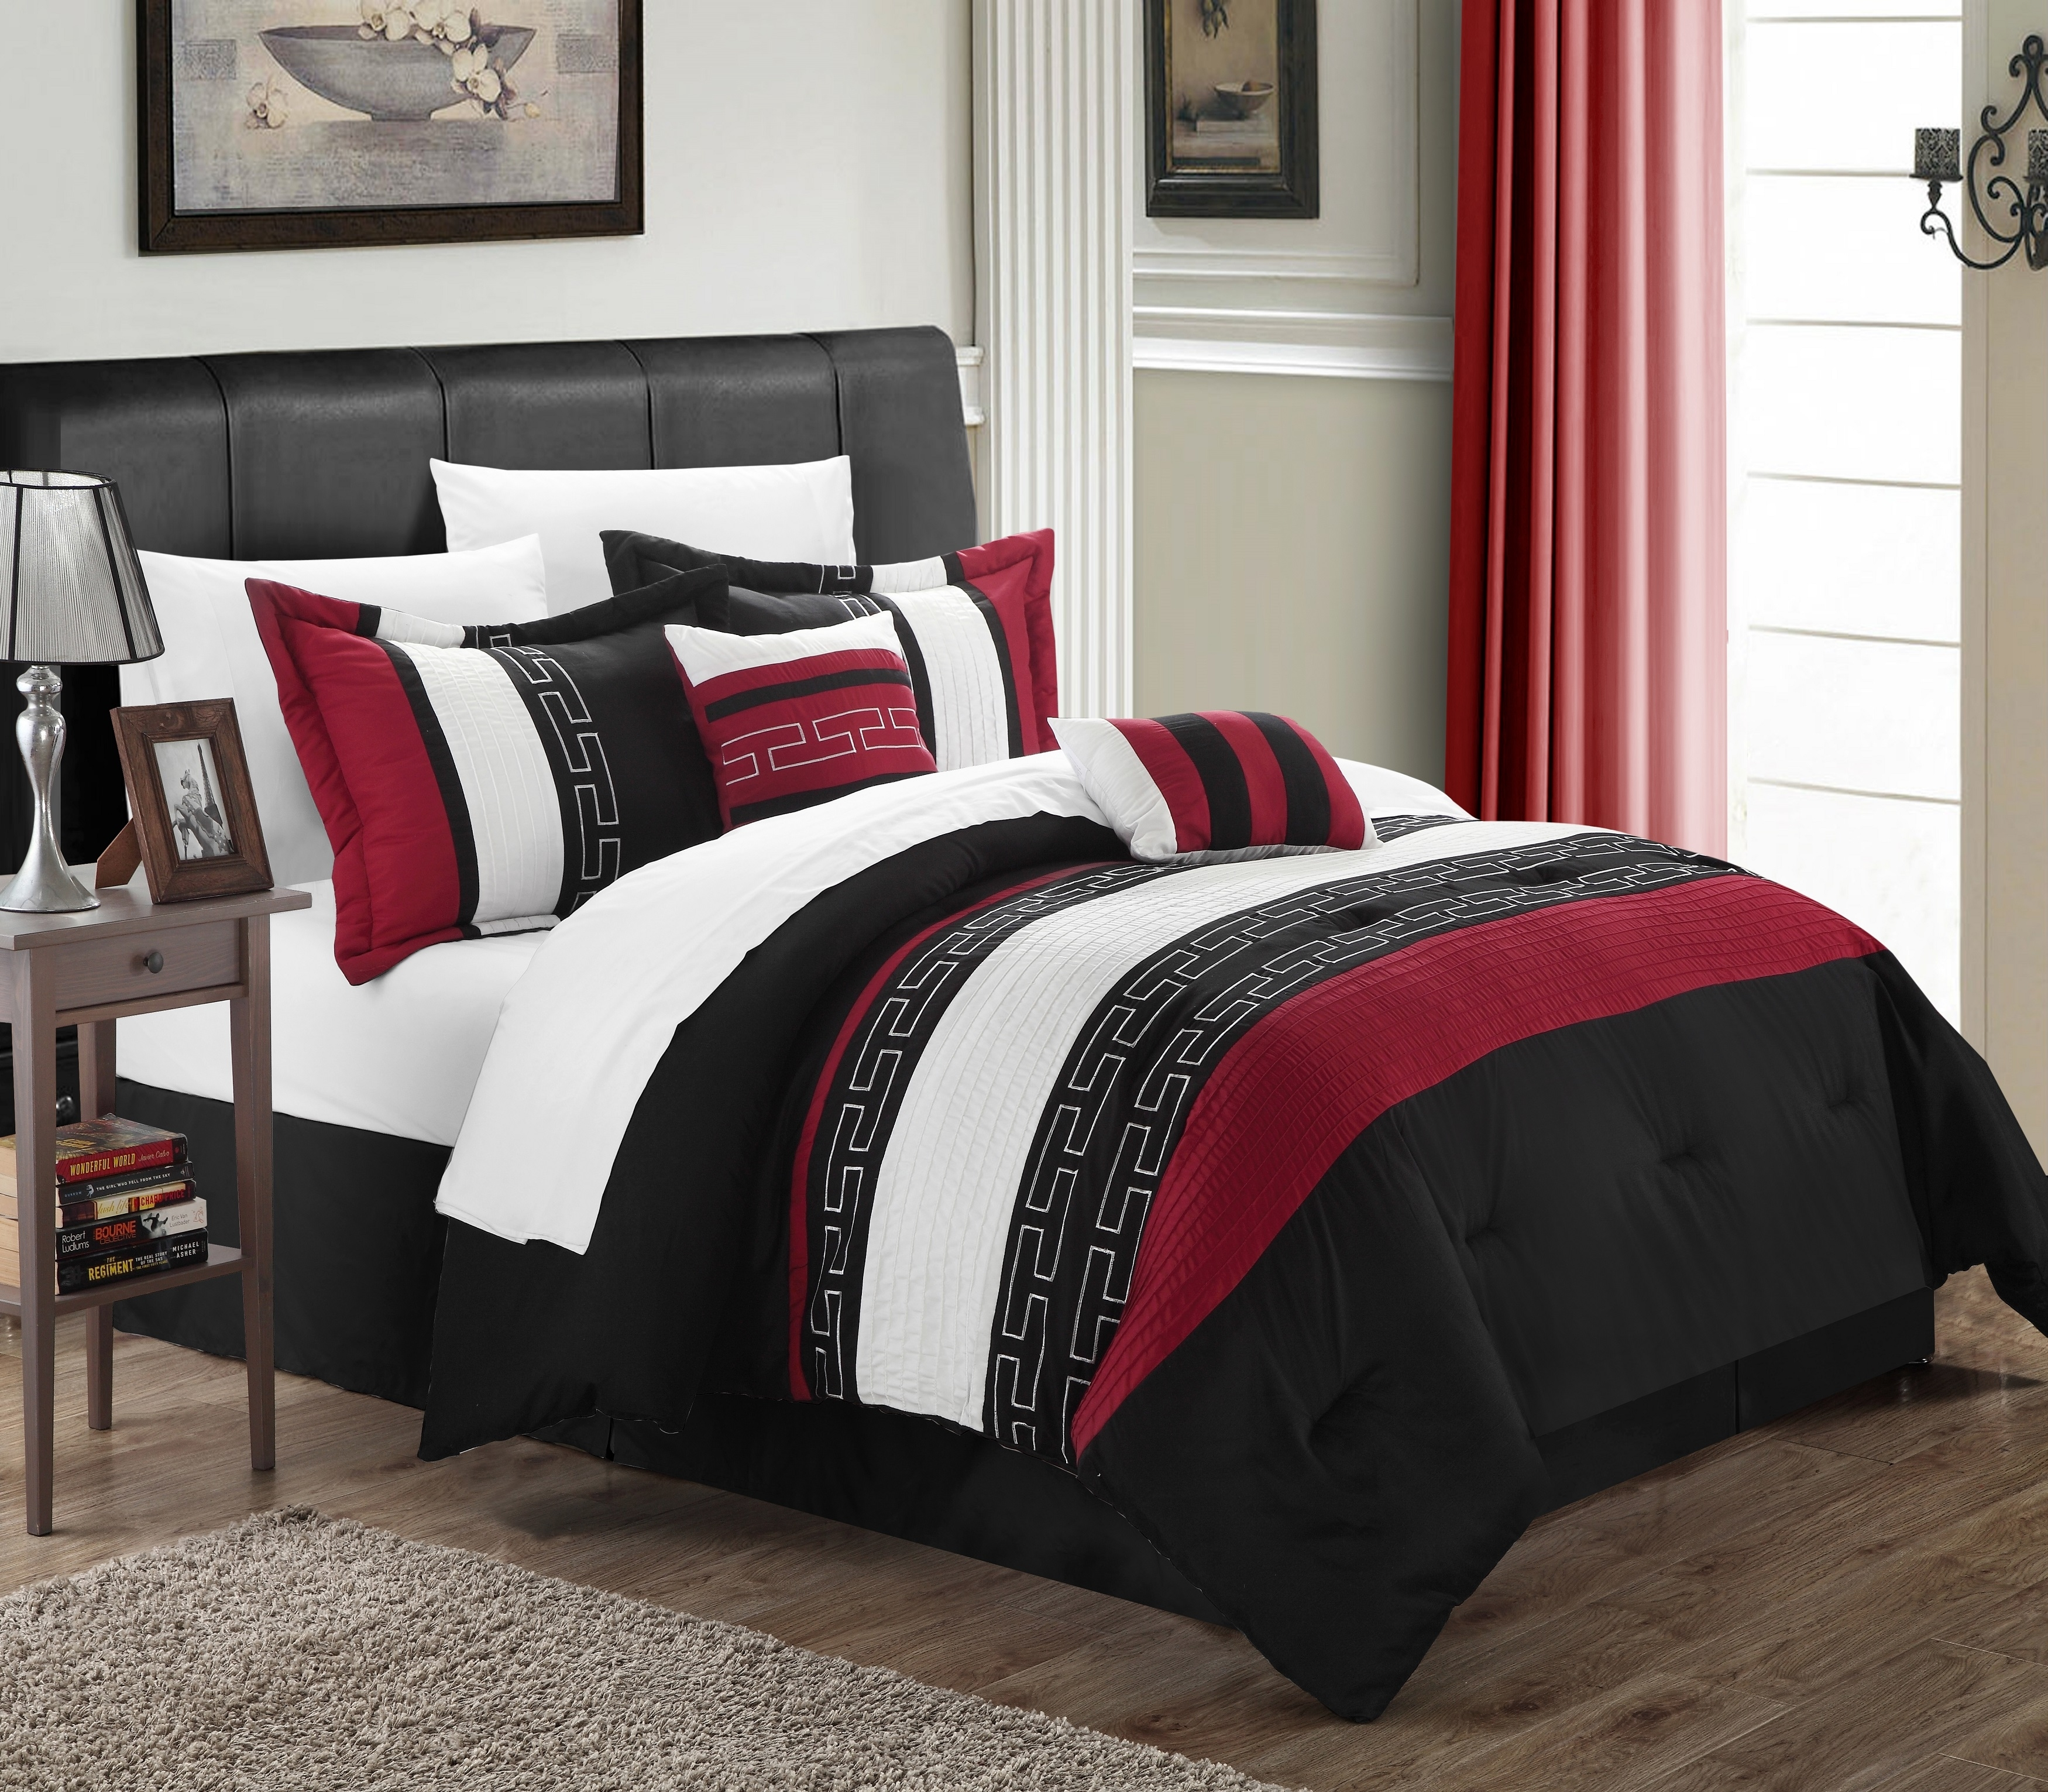 Chic Home Coralie 6-piece Comforter Set Hotel Collection - King, Black